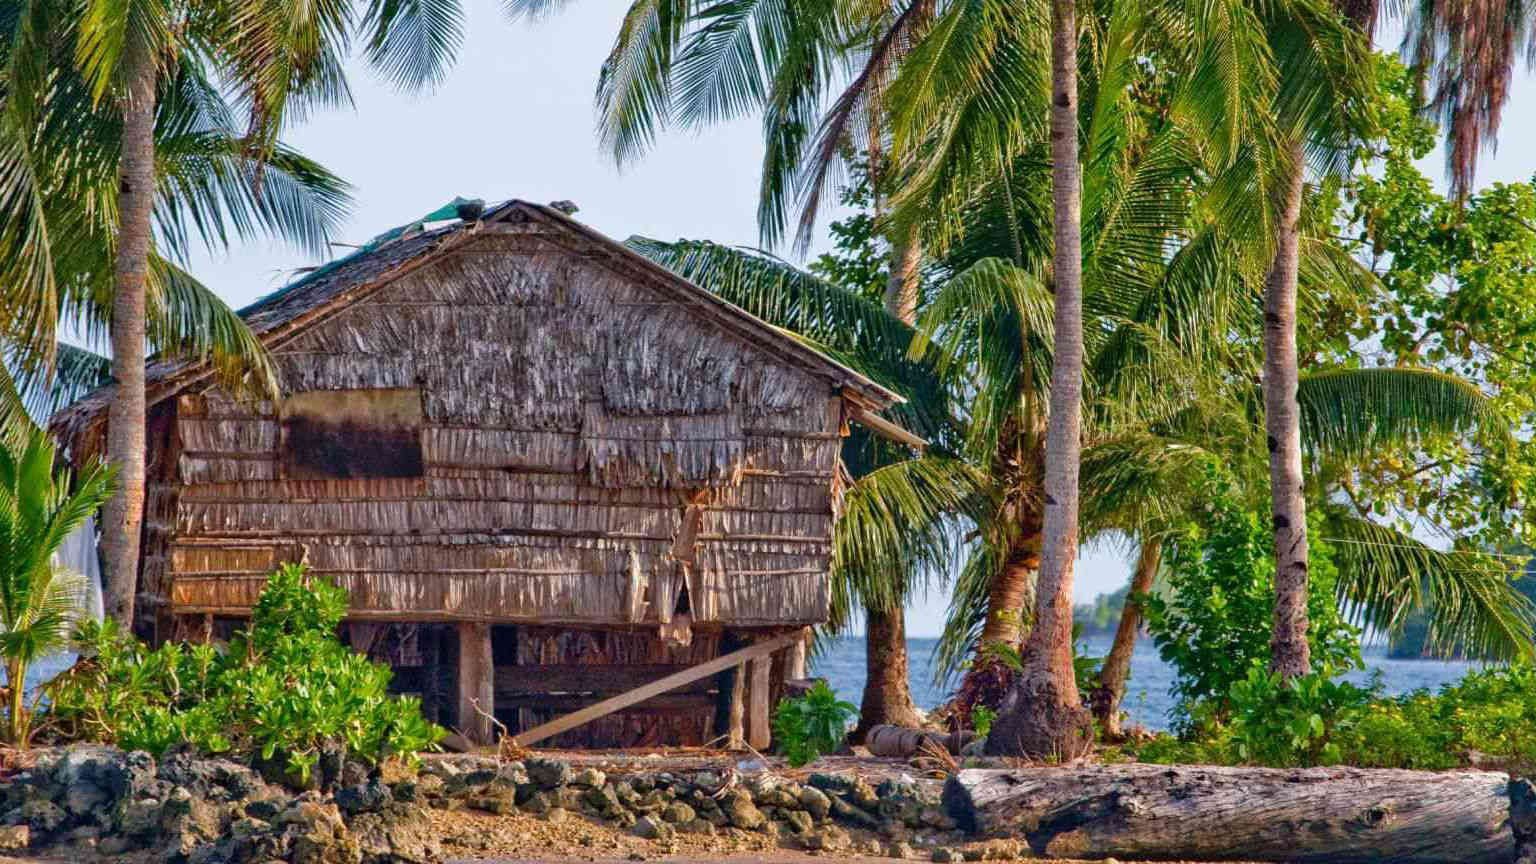 Solomon Islands Gizo